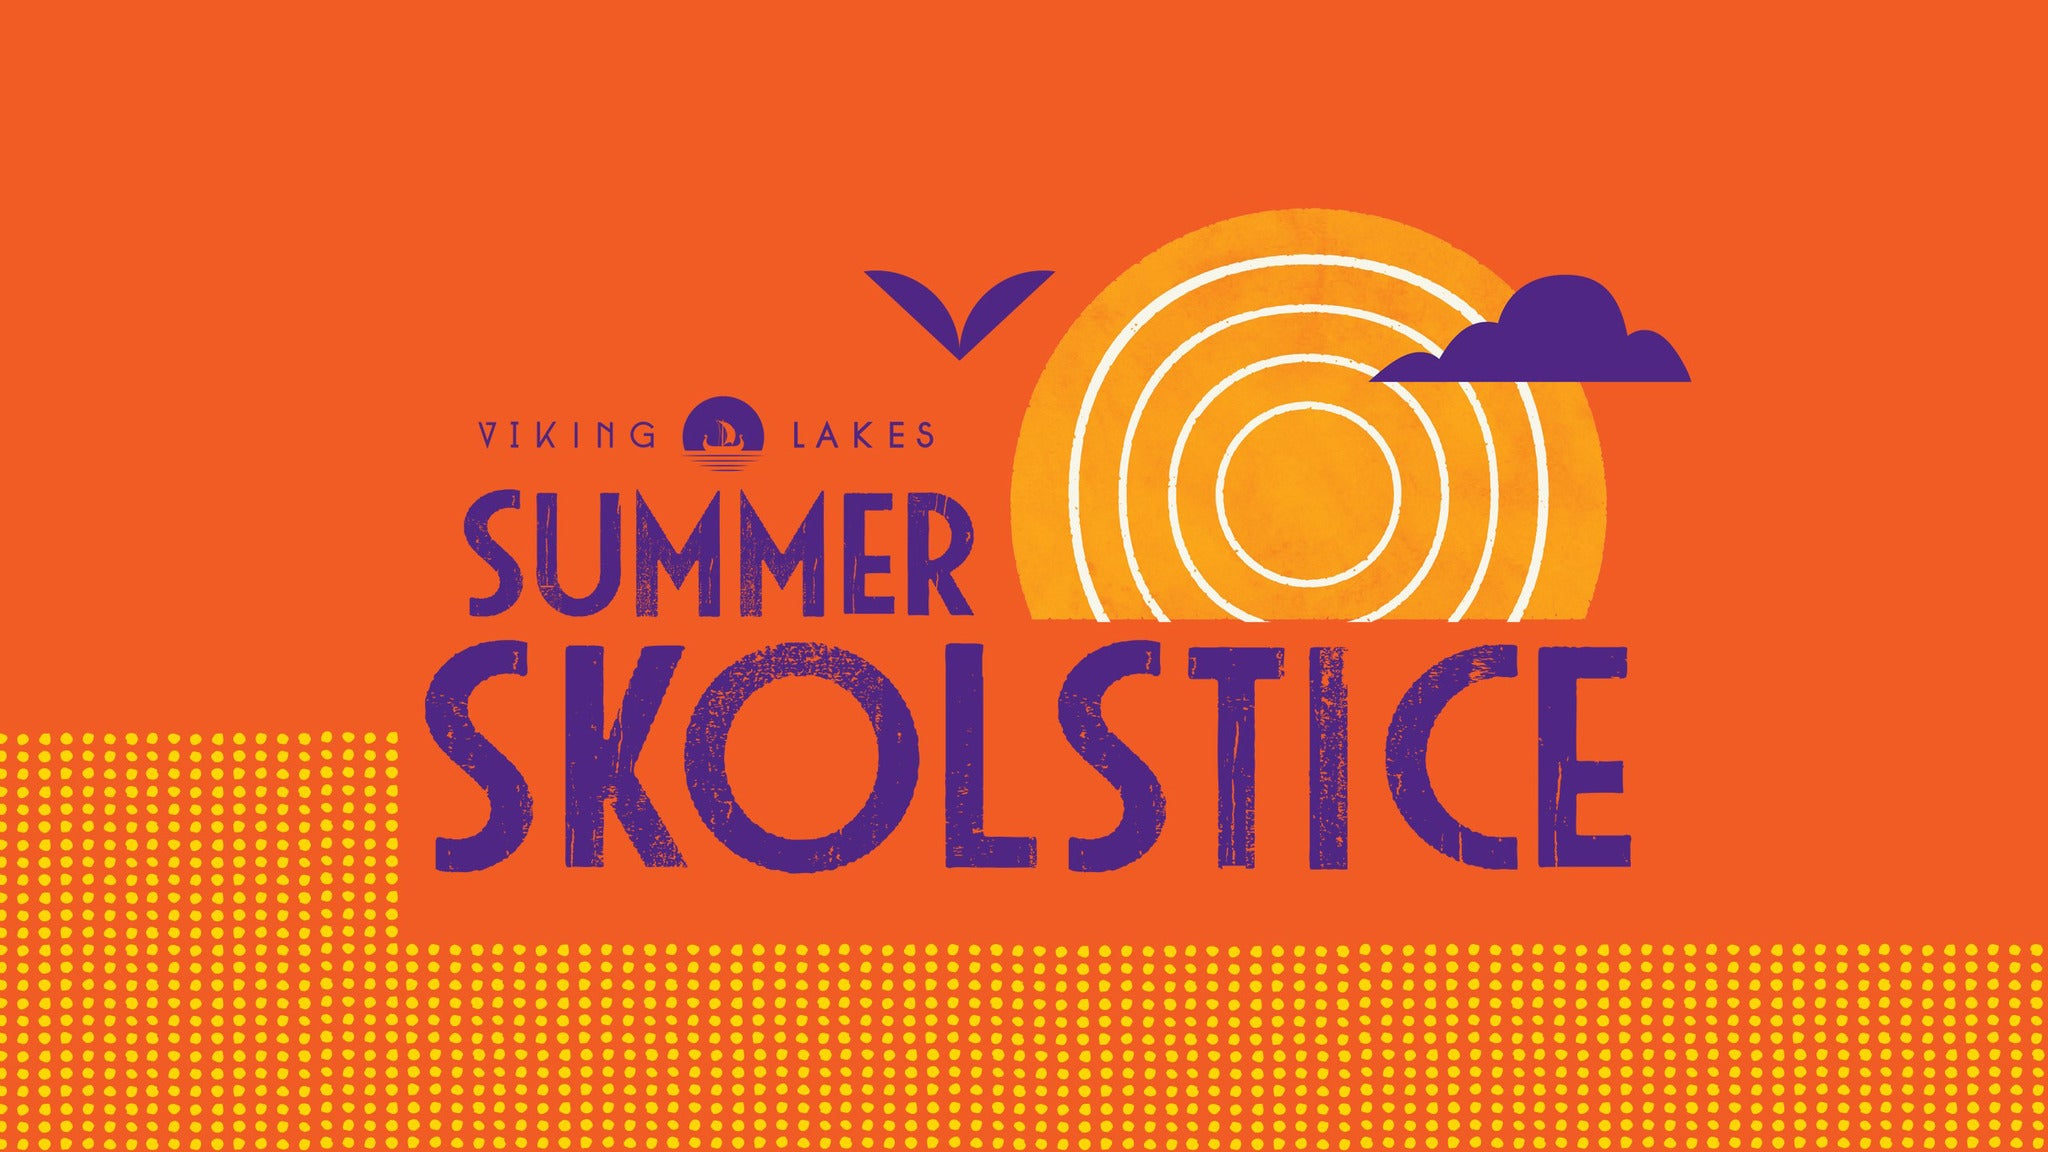 Summer Skolstice Concert Series: Elle King and Joss Stone